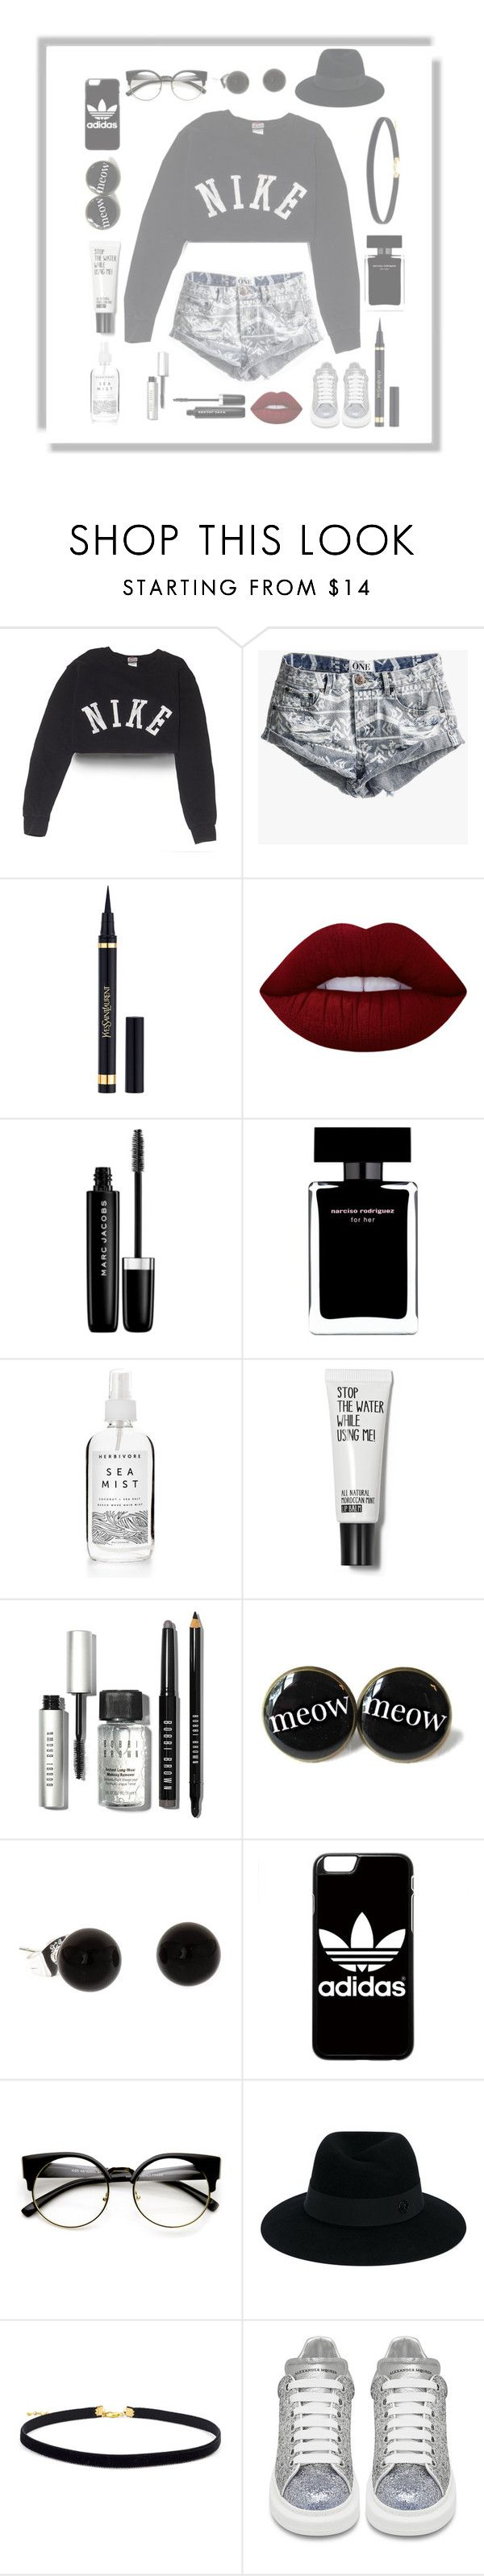 """""""With the pony you blonde """" by seniora ❤ liked on Polyvore featuring NIKE, One Teaspoon, Yves Saint Laurent, Lime Crime, Marc Jacobs, Narciso Rodriguez, Bobbi Brown Cosmetics, adidas, Maison Michel and Alexander McQueen"""